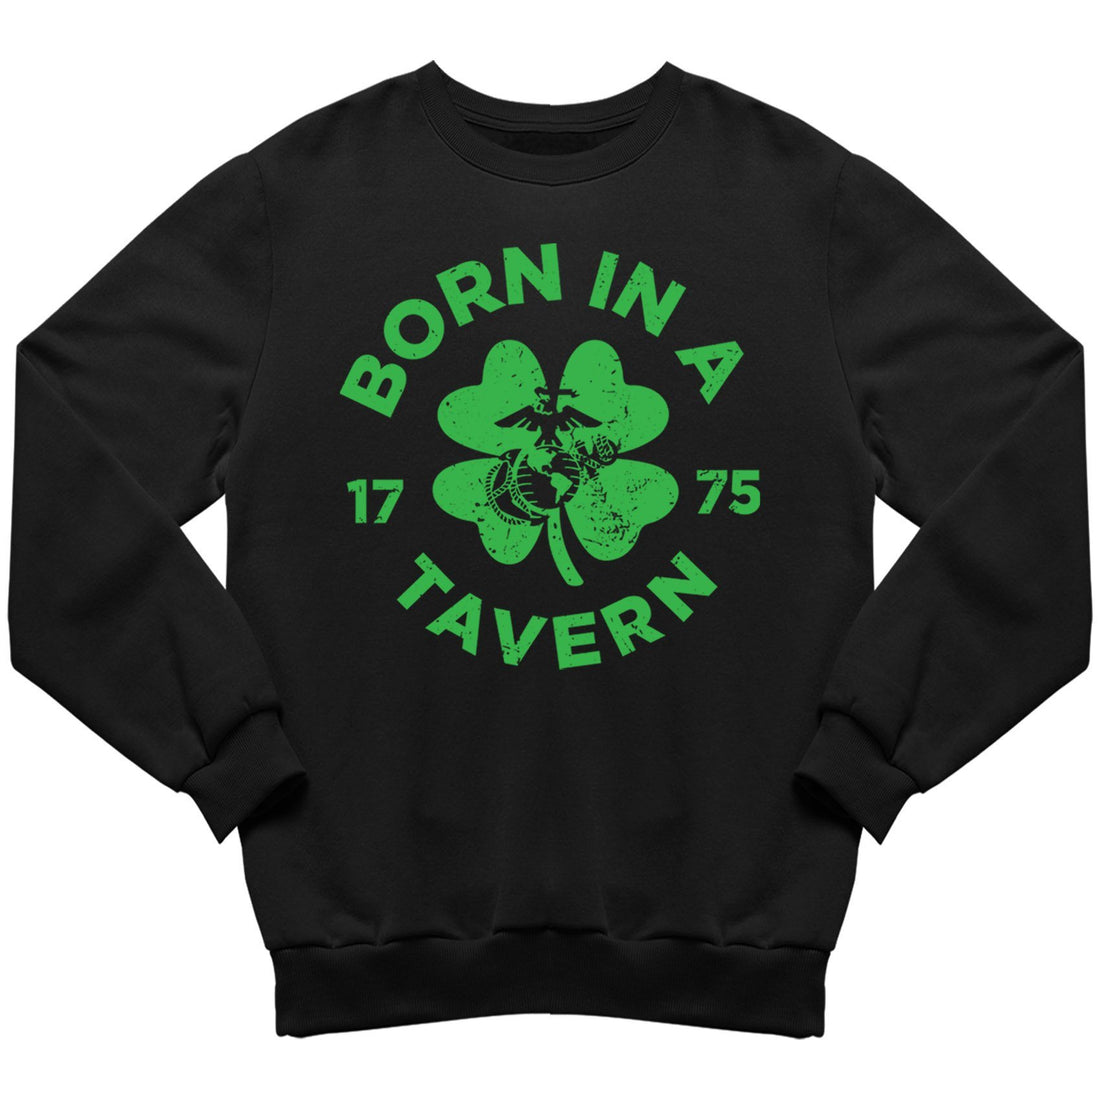 Born In A Tavern St. Patricks Day Sweatshirt - Marine Corps Direct